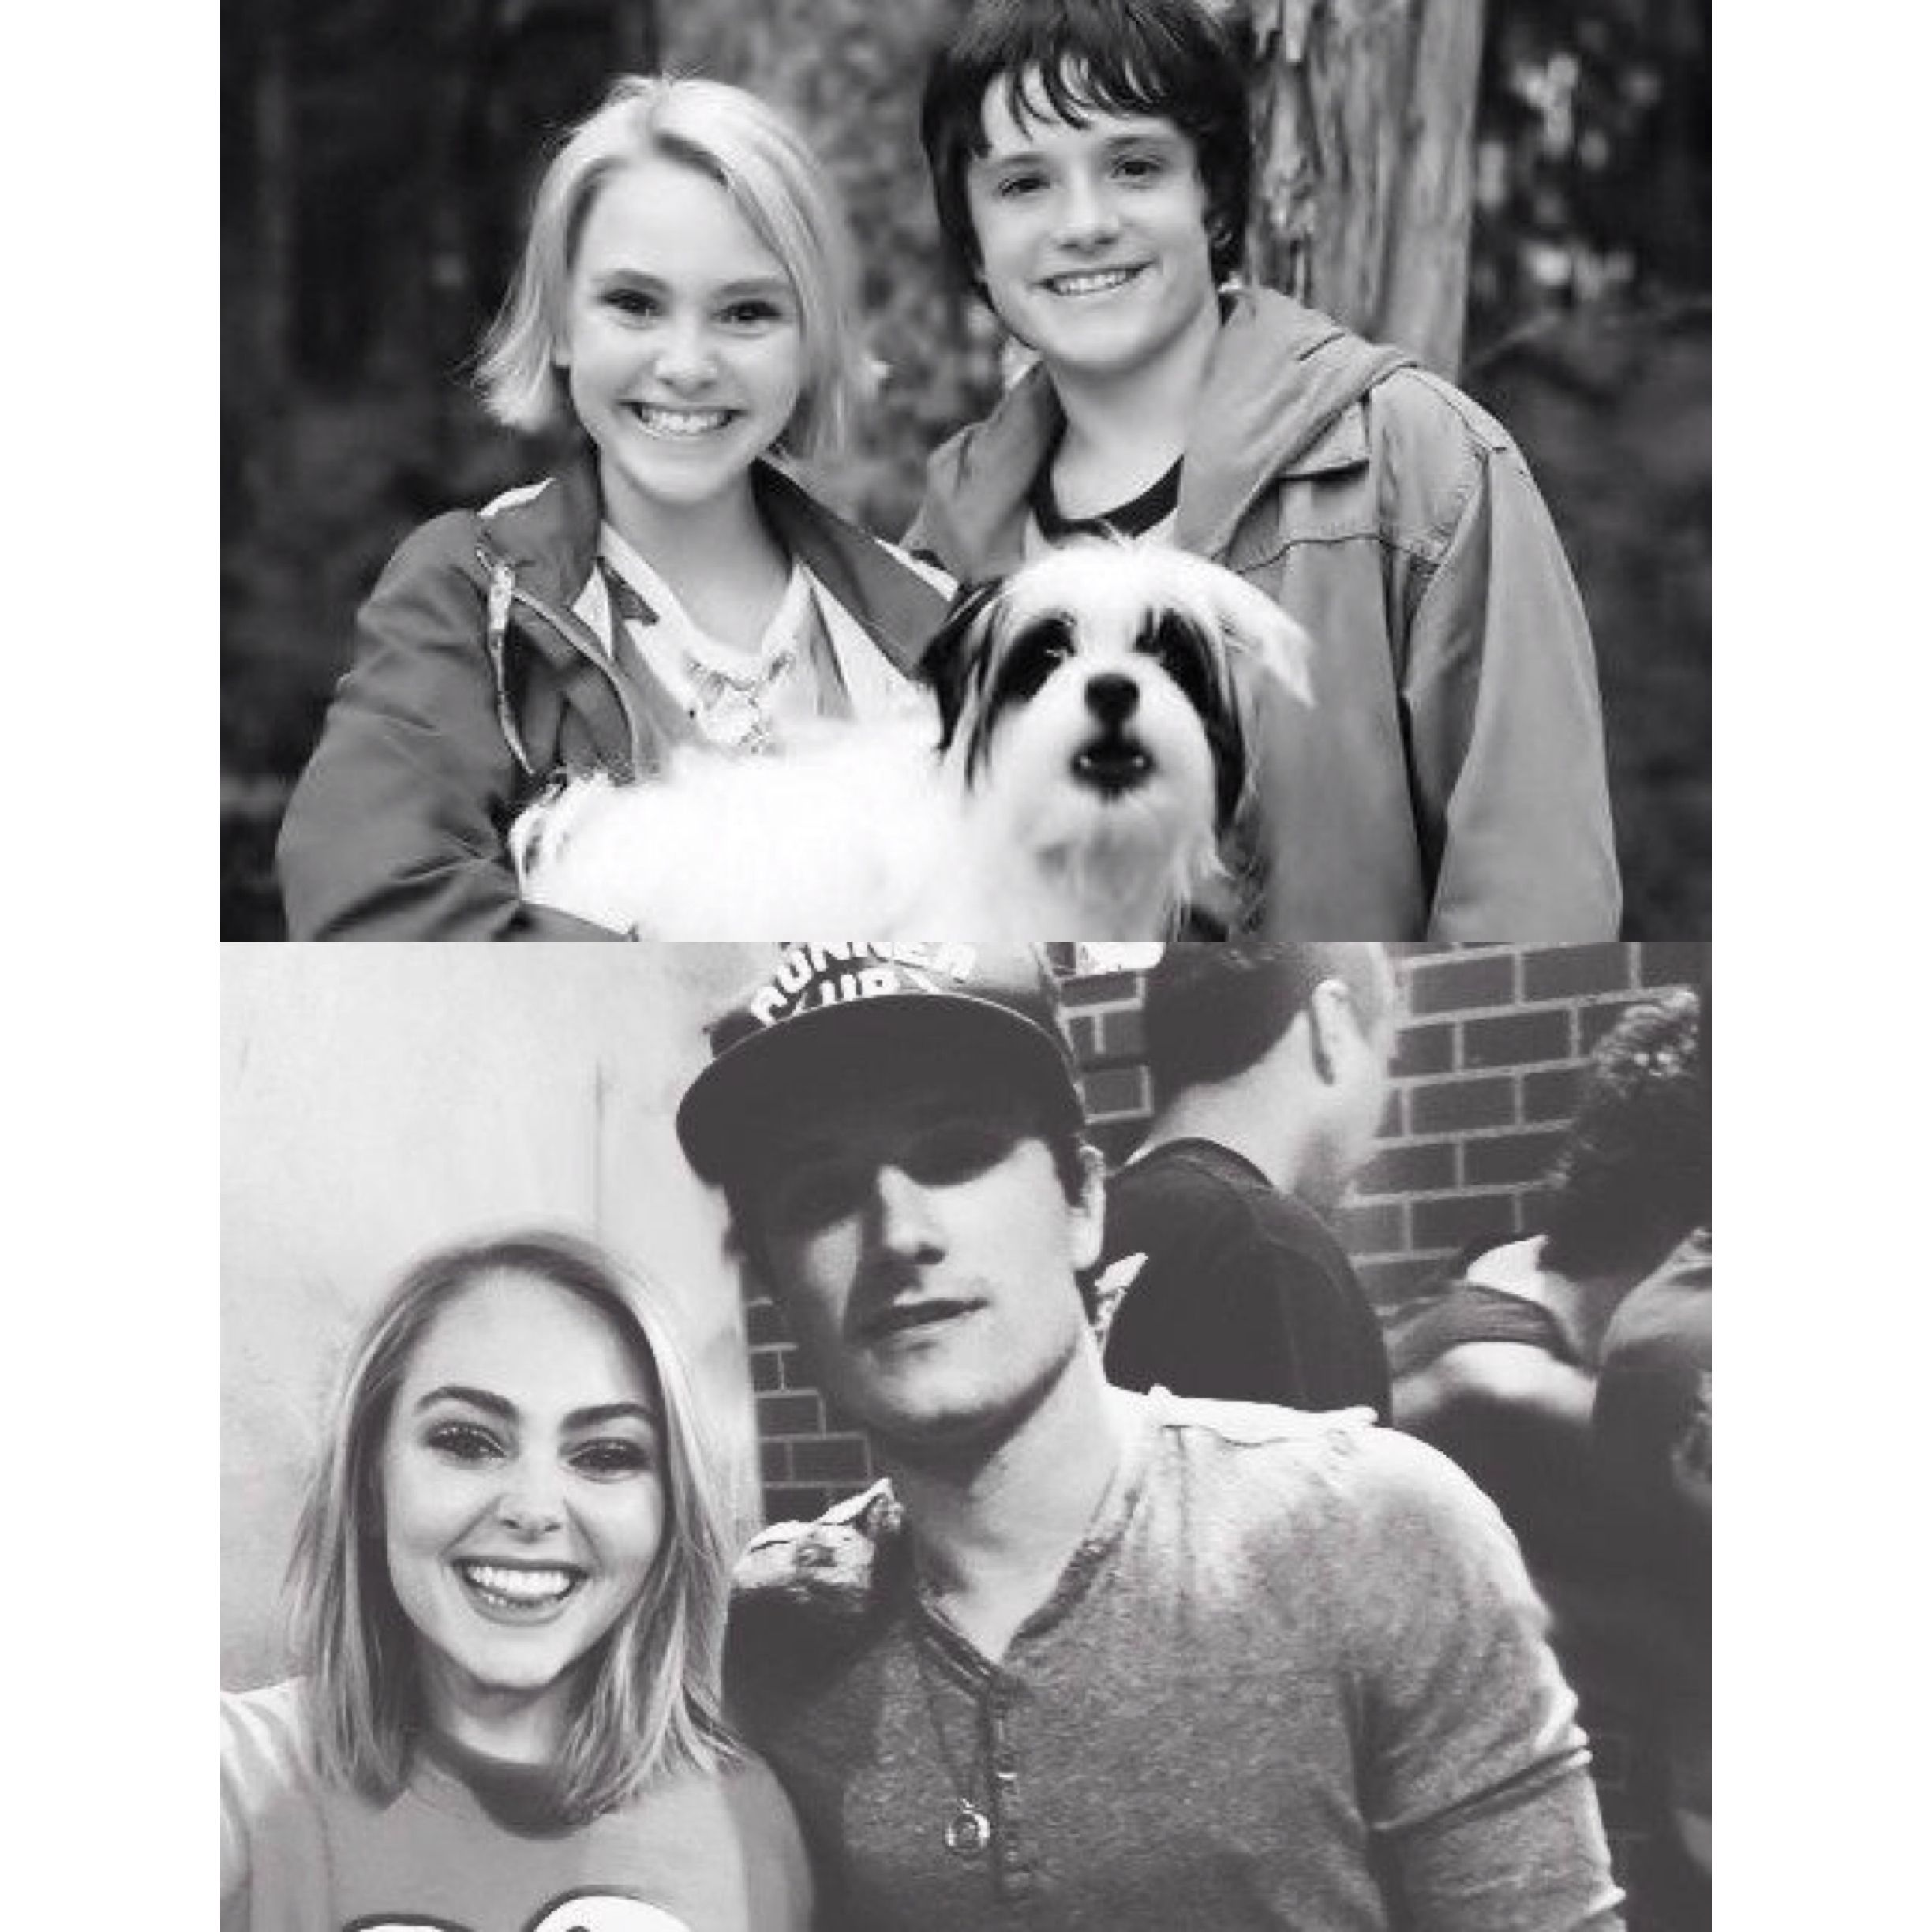 Can't contain my happiness Bridge to terabithia, Movies